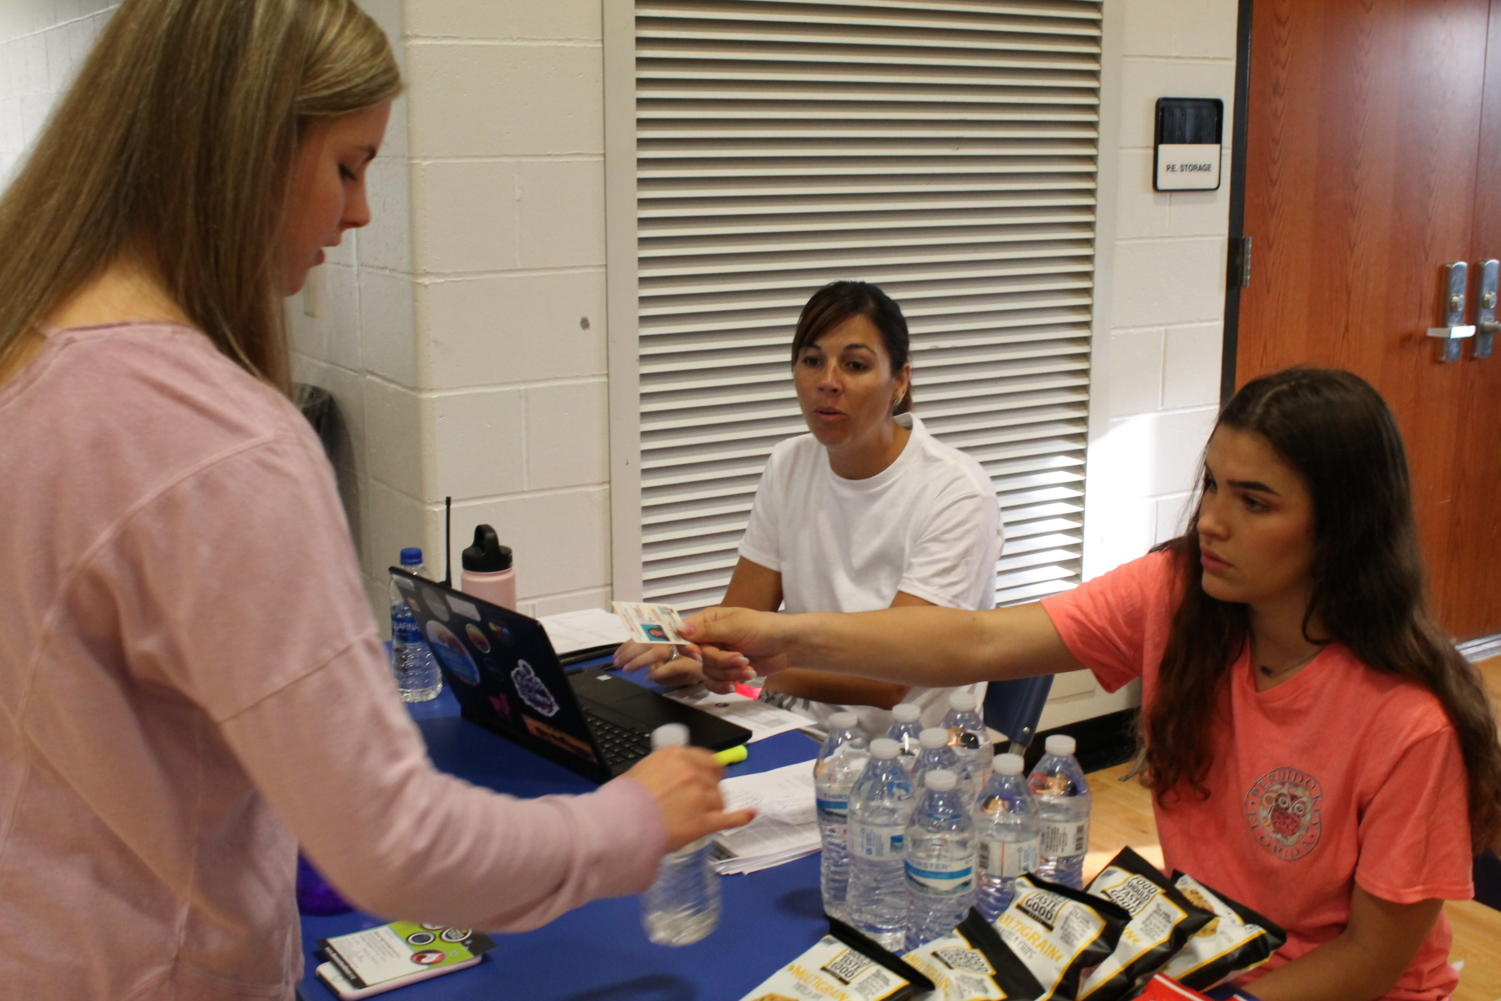 Junior Emily Gann checks in to donate blood with senior Laura Sanders and Mrs. Strathman.